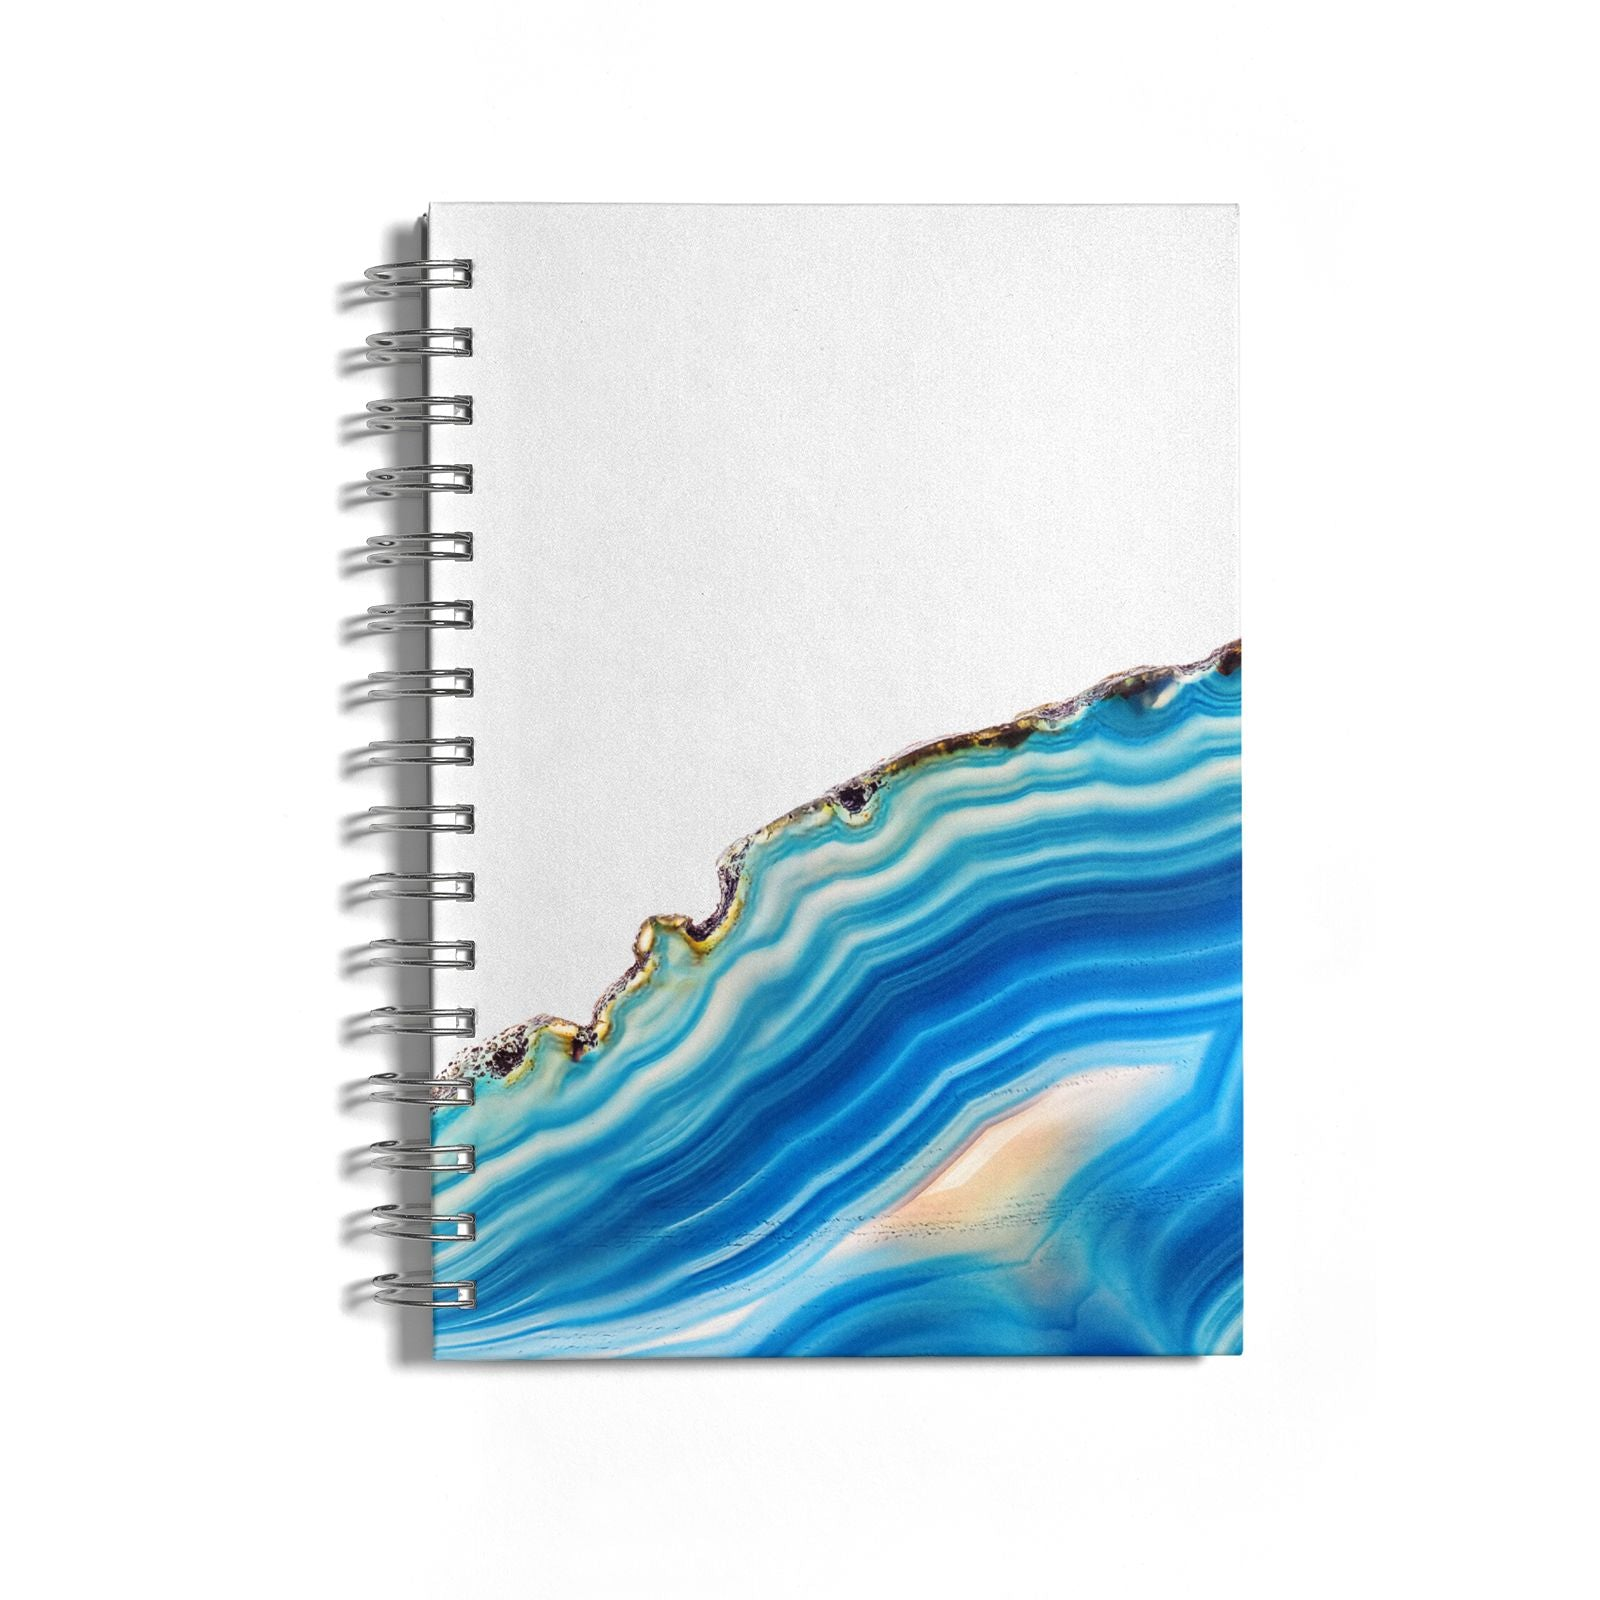 Agate Pale Blue and Bright Blue Notebook with Silver Coil